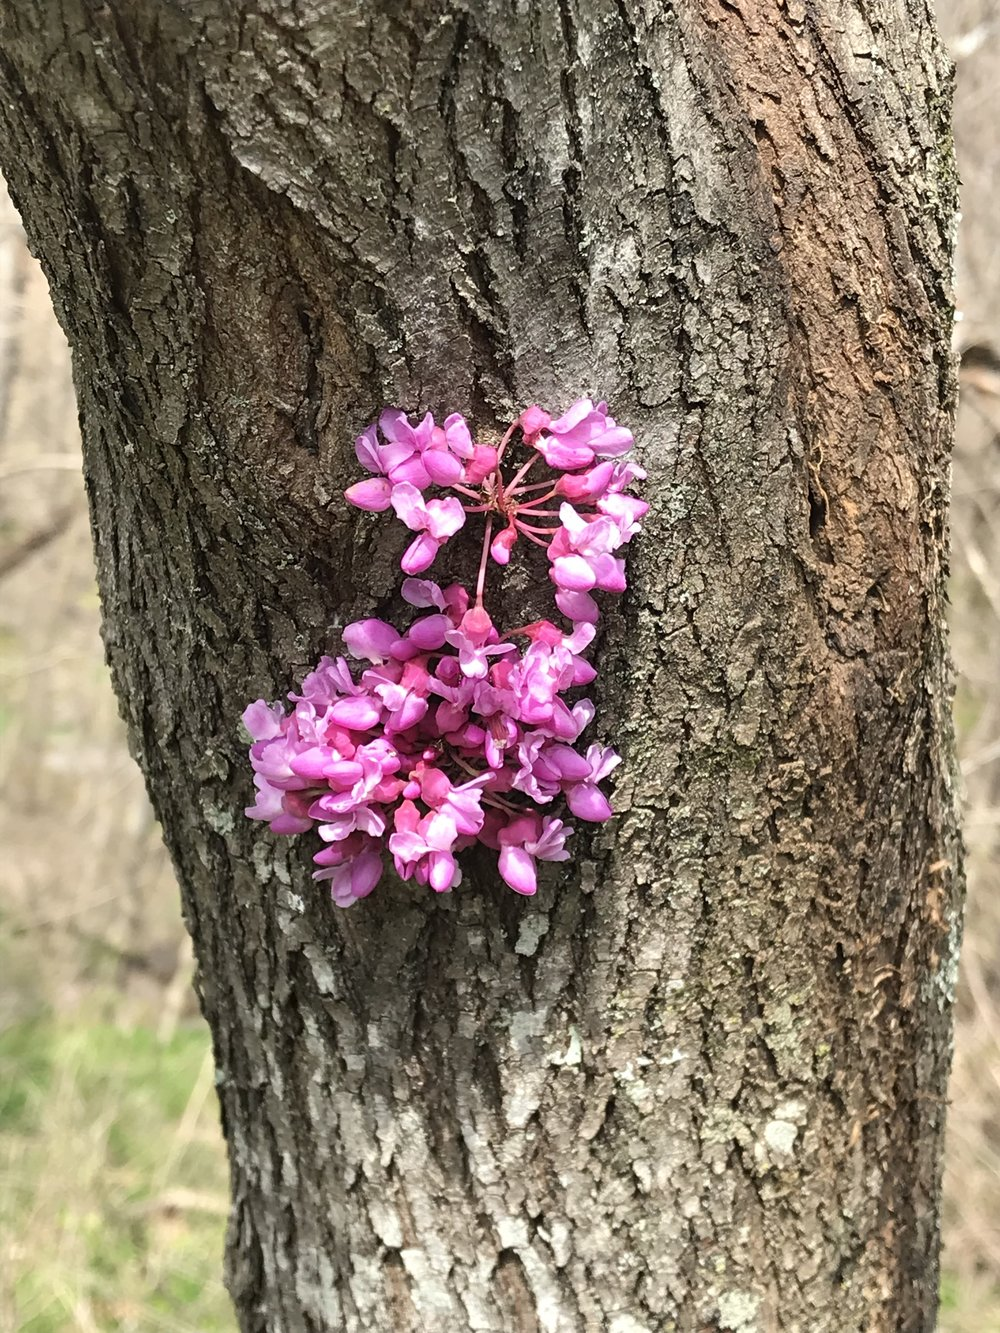 Red bud (edible)